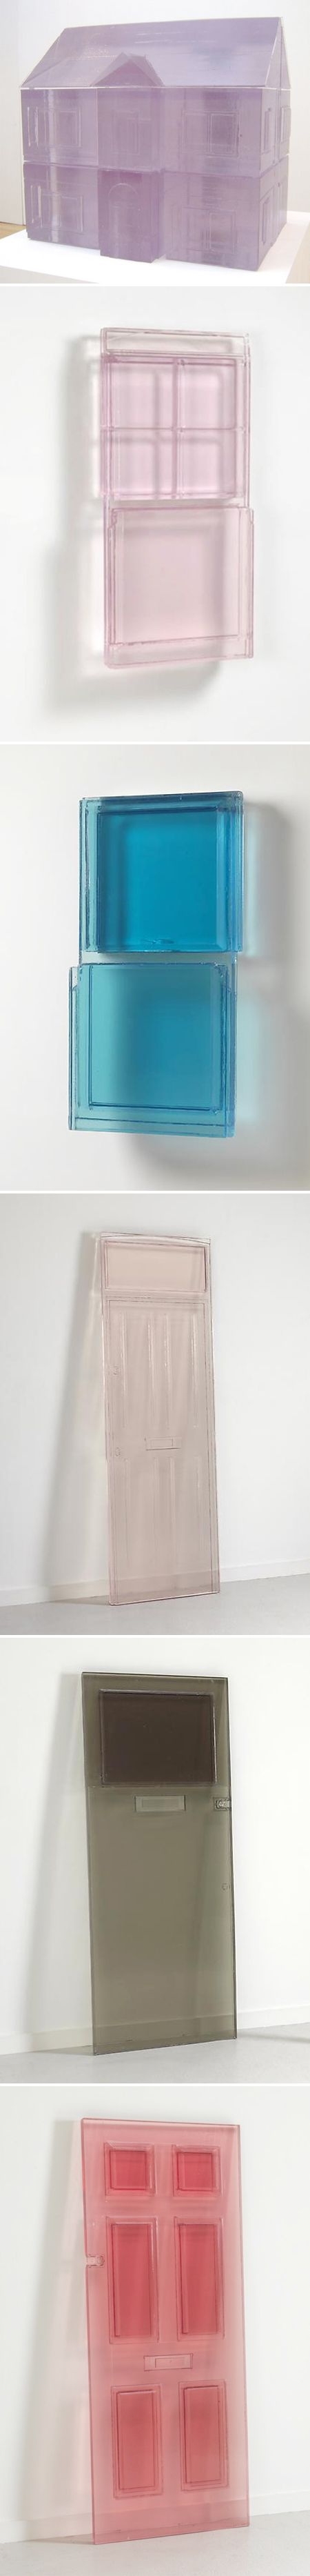 """Rachel Whiteread ~ Long Eyes """"…revisits the subject of doors and begins a series of windows, using resin as her medium. She casts the front and back of each object and merges them to create an inverse of the original. The translucent nature of the resin imbues these pieces with a lightness which belies their mass, and Whiteread has chosen colors evocative of light in relation to the passage of time."""" ~ luhringaugustine.com"""